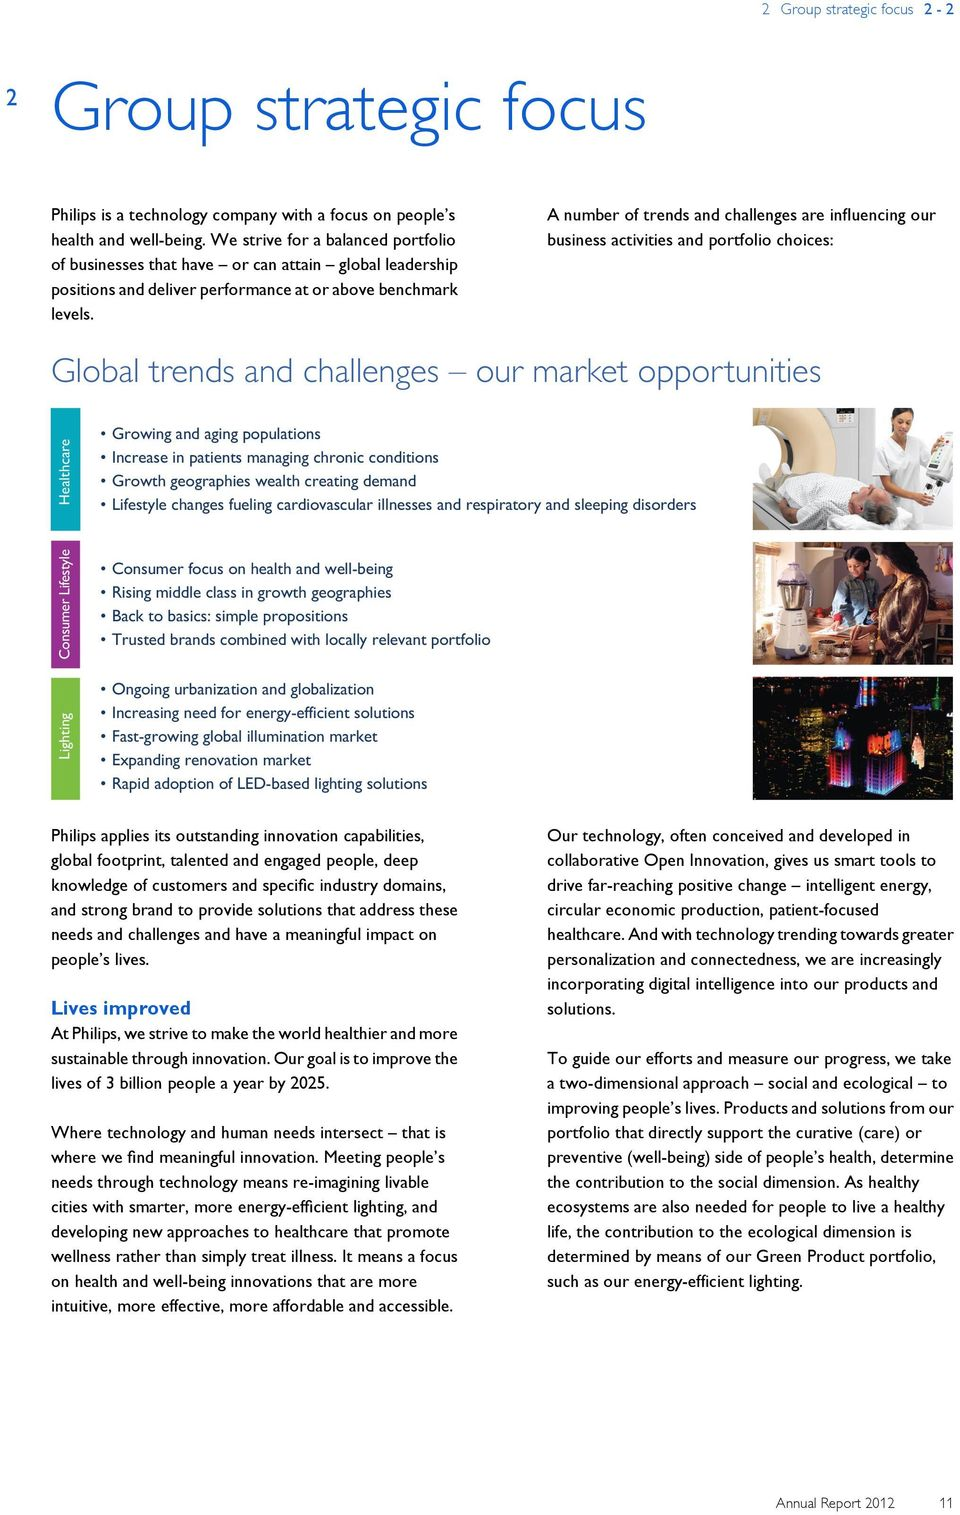 A number of trends and challenges are influencing our business activities and portfolio choices: Global trends and challenges our market opportunities Lighting Consumer Lifestyle Healthcare Growing